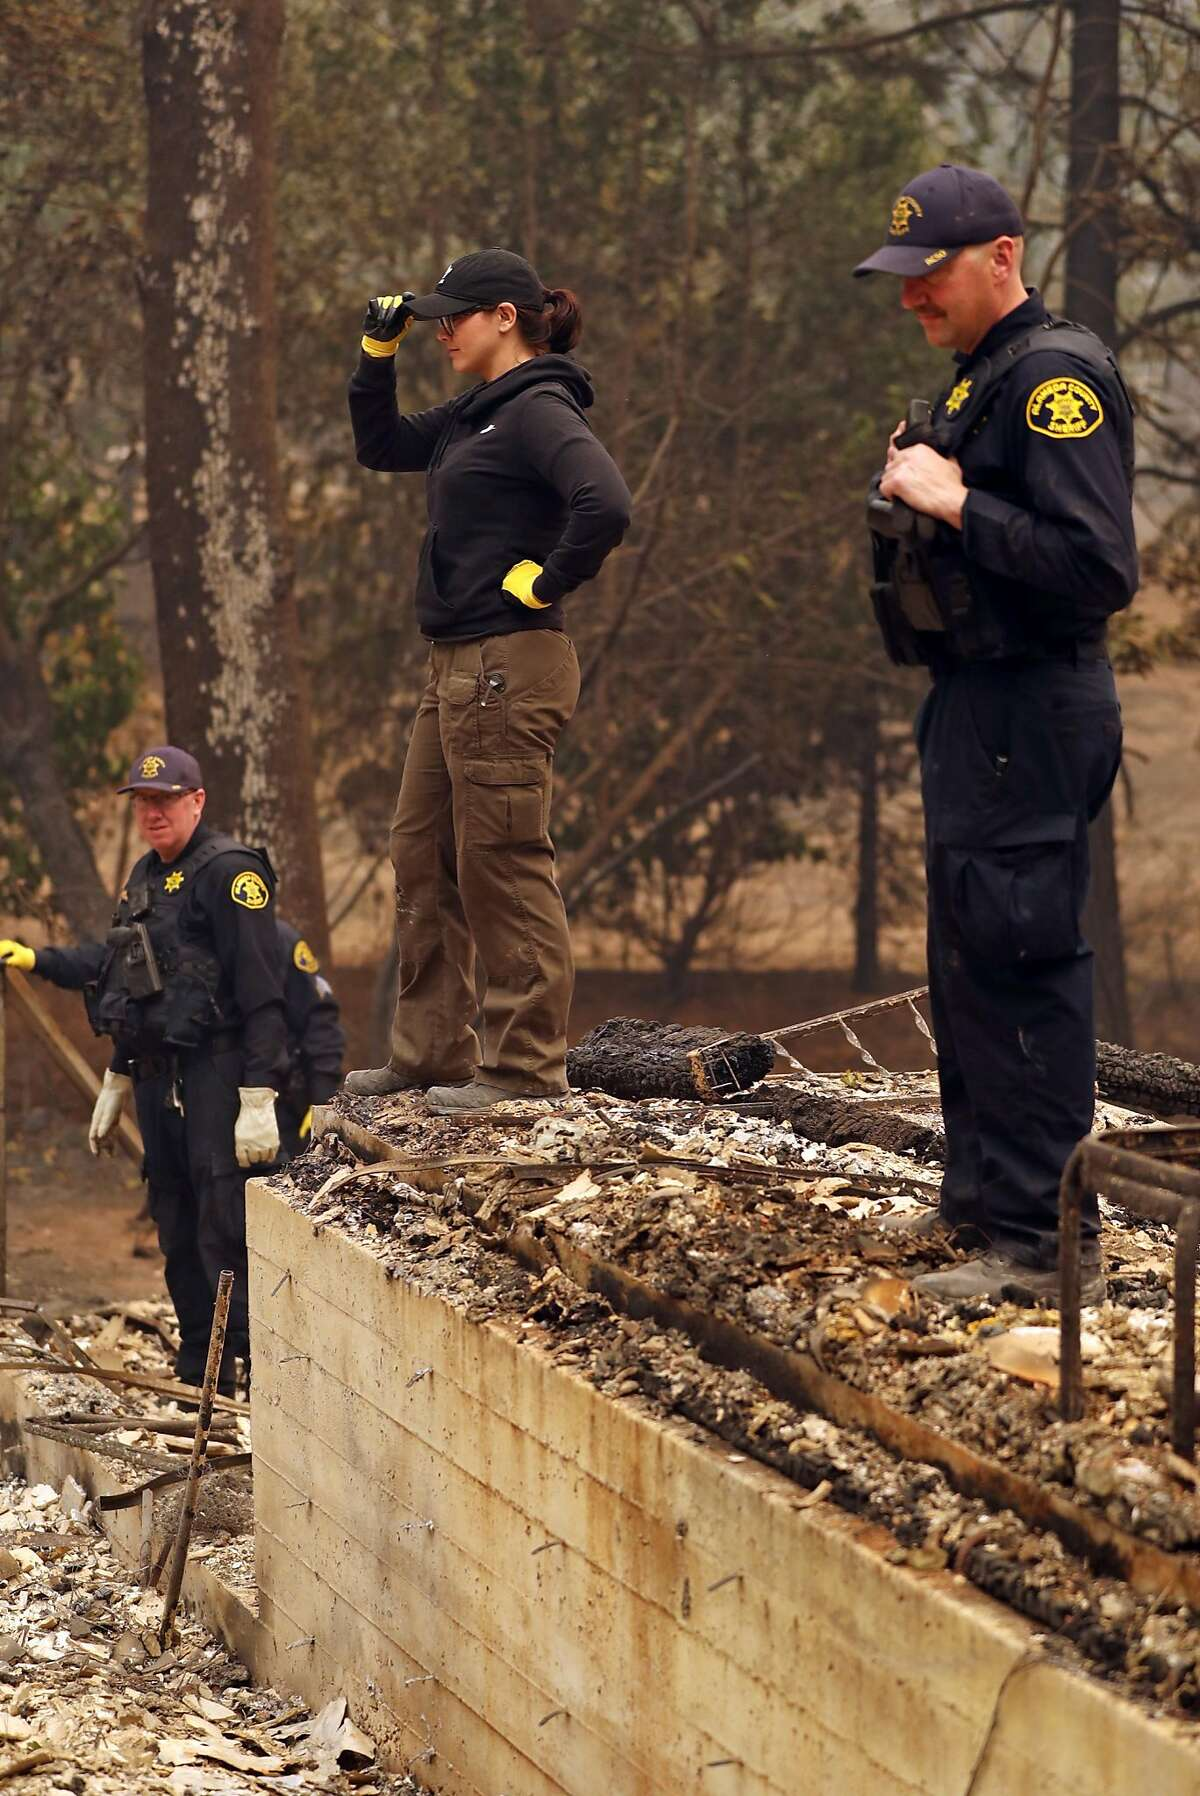 Butte County Investigator Tiffany Larson is flanked by Alameda County Sheriff's Deputies Jeff Hovda (left) and Jason Henshaw (right) as they search for victims in aftermath of Camp Fire in Paradise, Calif. on Monday, November 12, 2018.